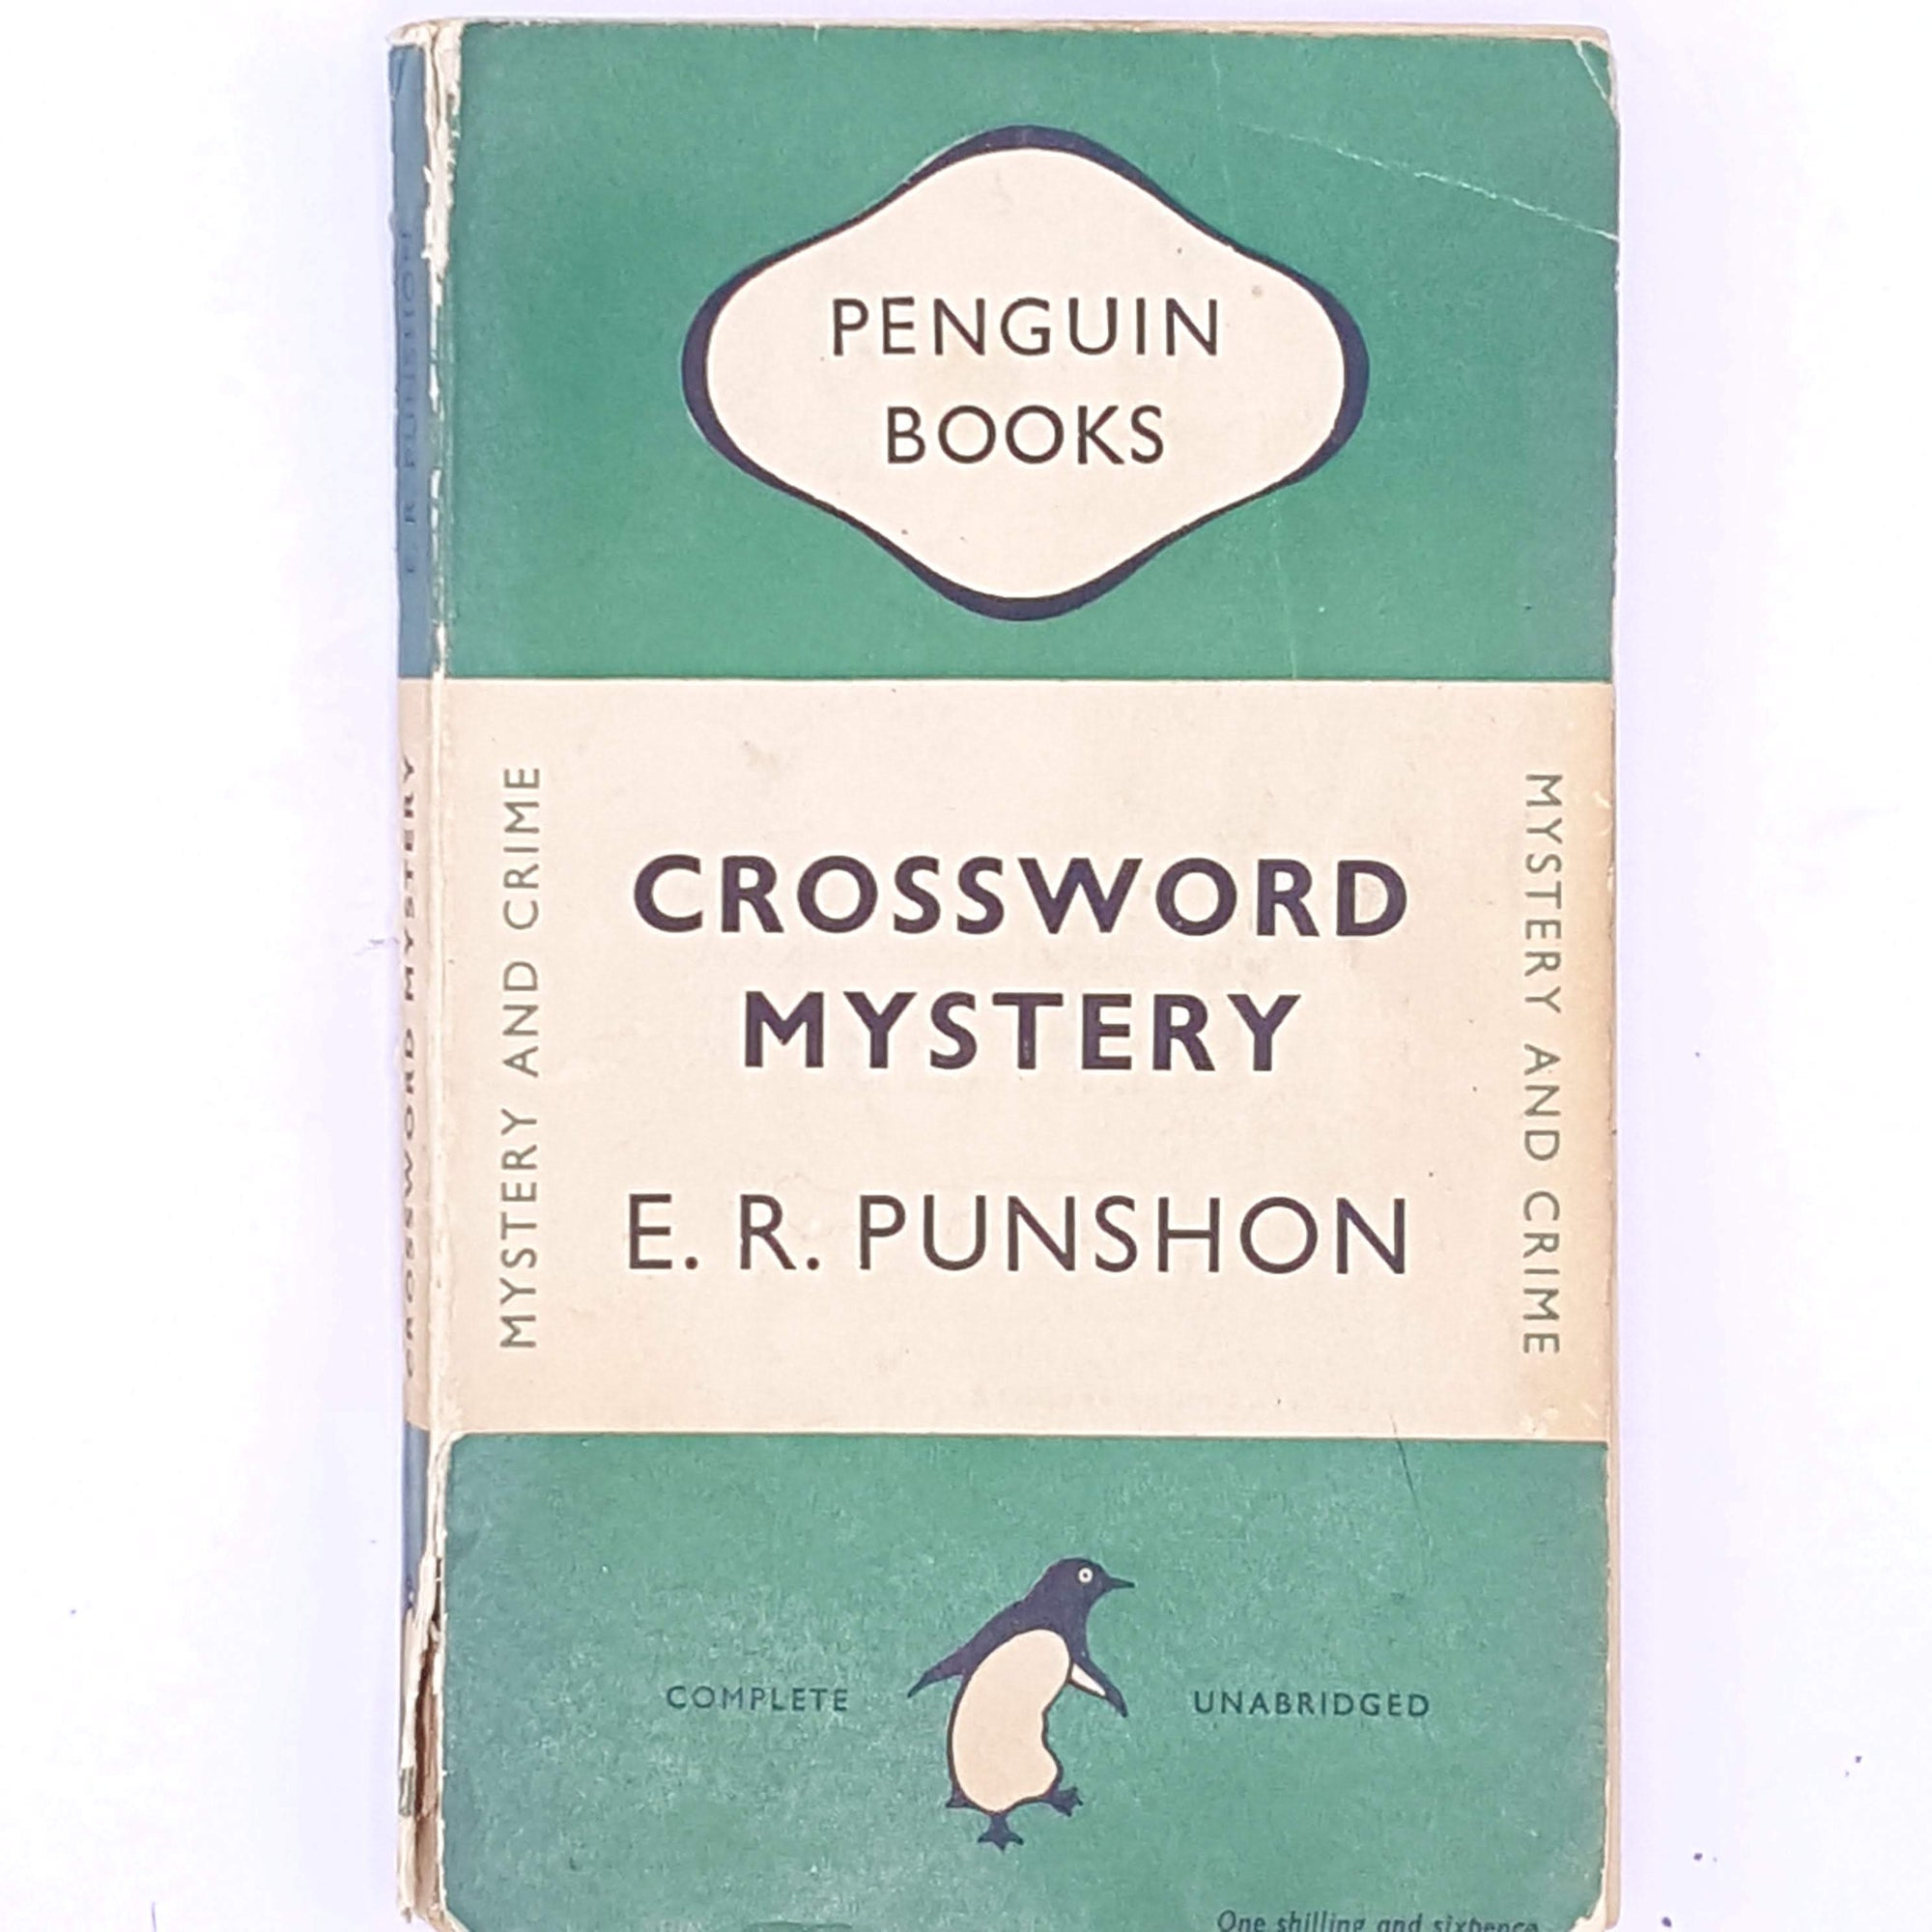 puzzles-patterned-penguin-antique-sport-classic-books-decorative-vintage-Crossword-Mystery-for-him-christmas-gifts-detective-old-country-house-library-thrift-